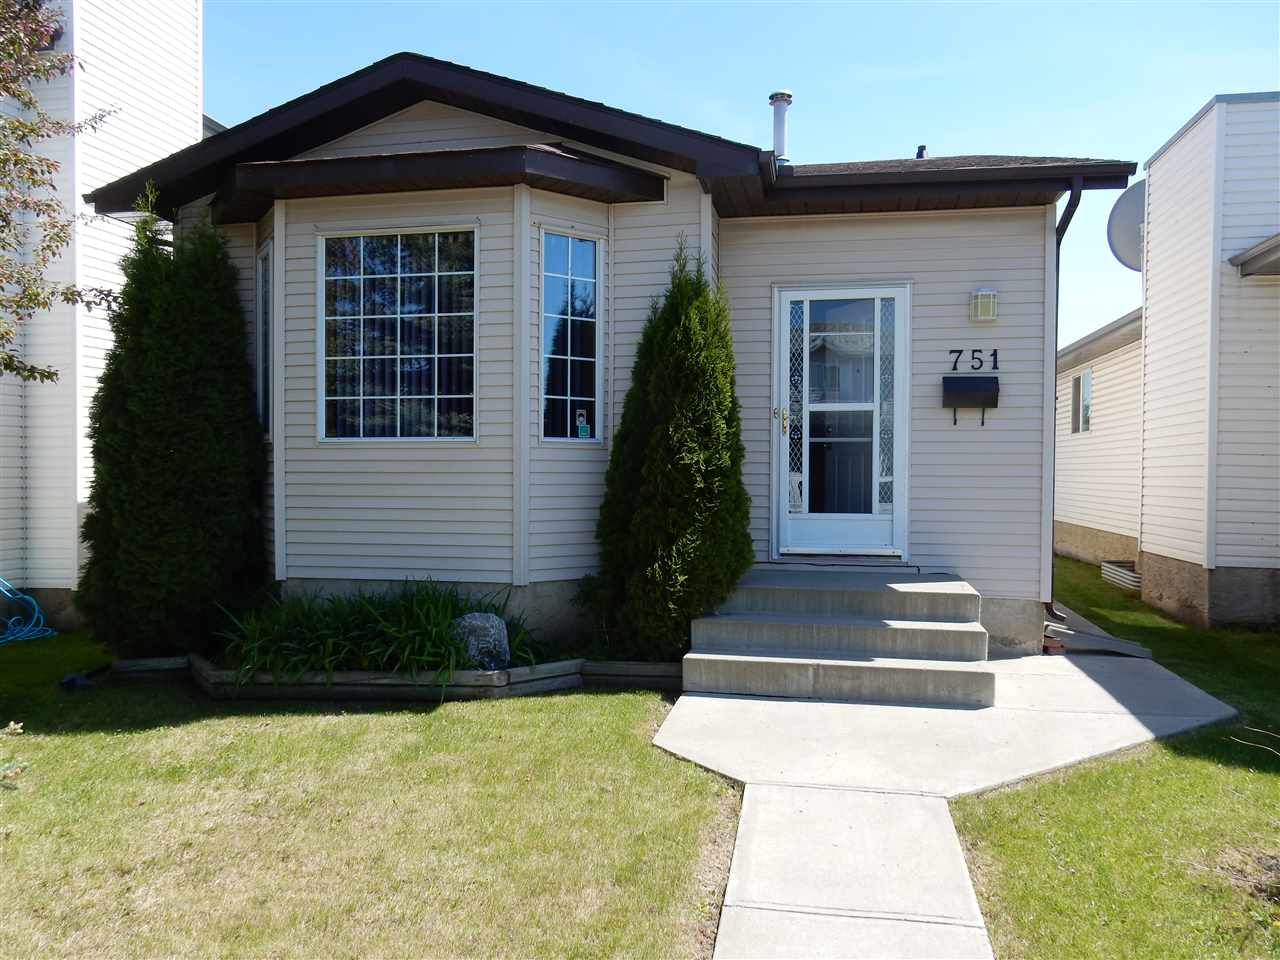 Main Photo: 751 Johns Road in Edmonton: Zone 29 House for sale : MLS(r) # E4066582